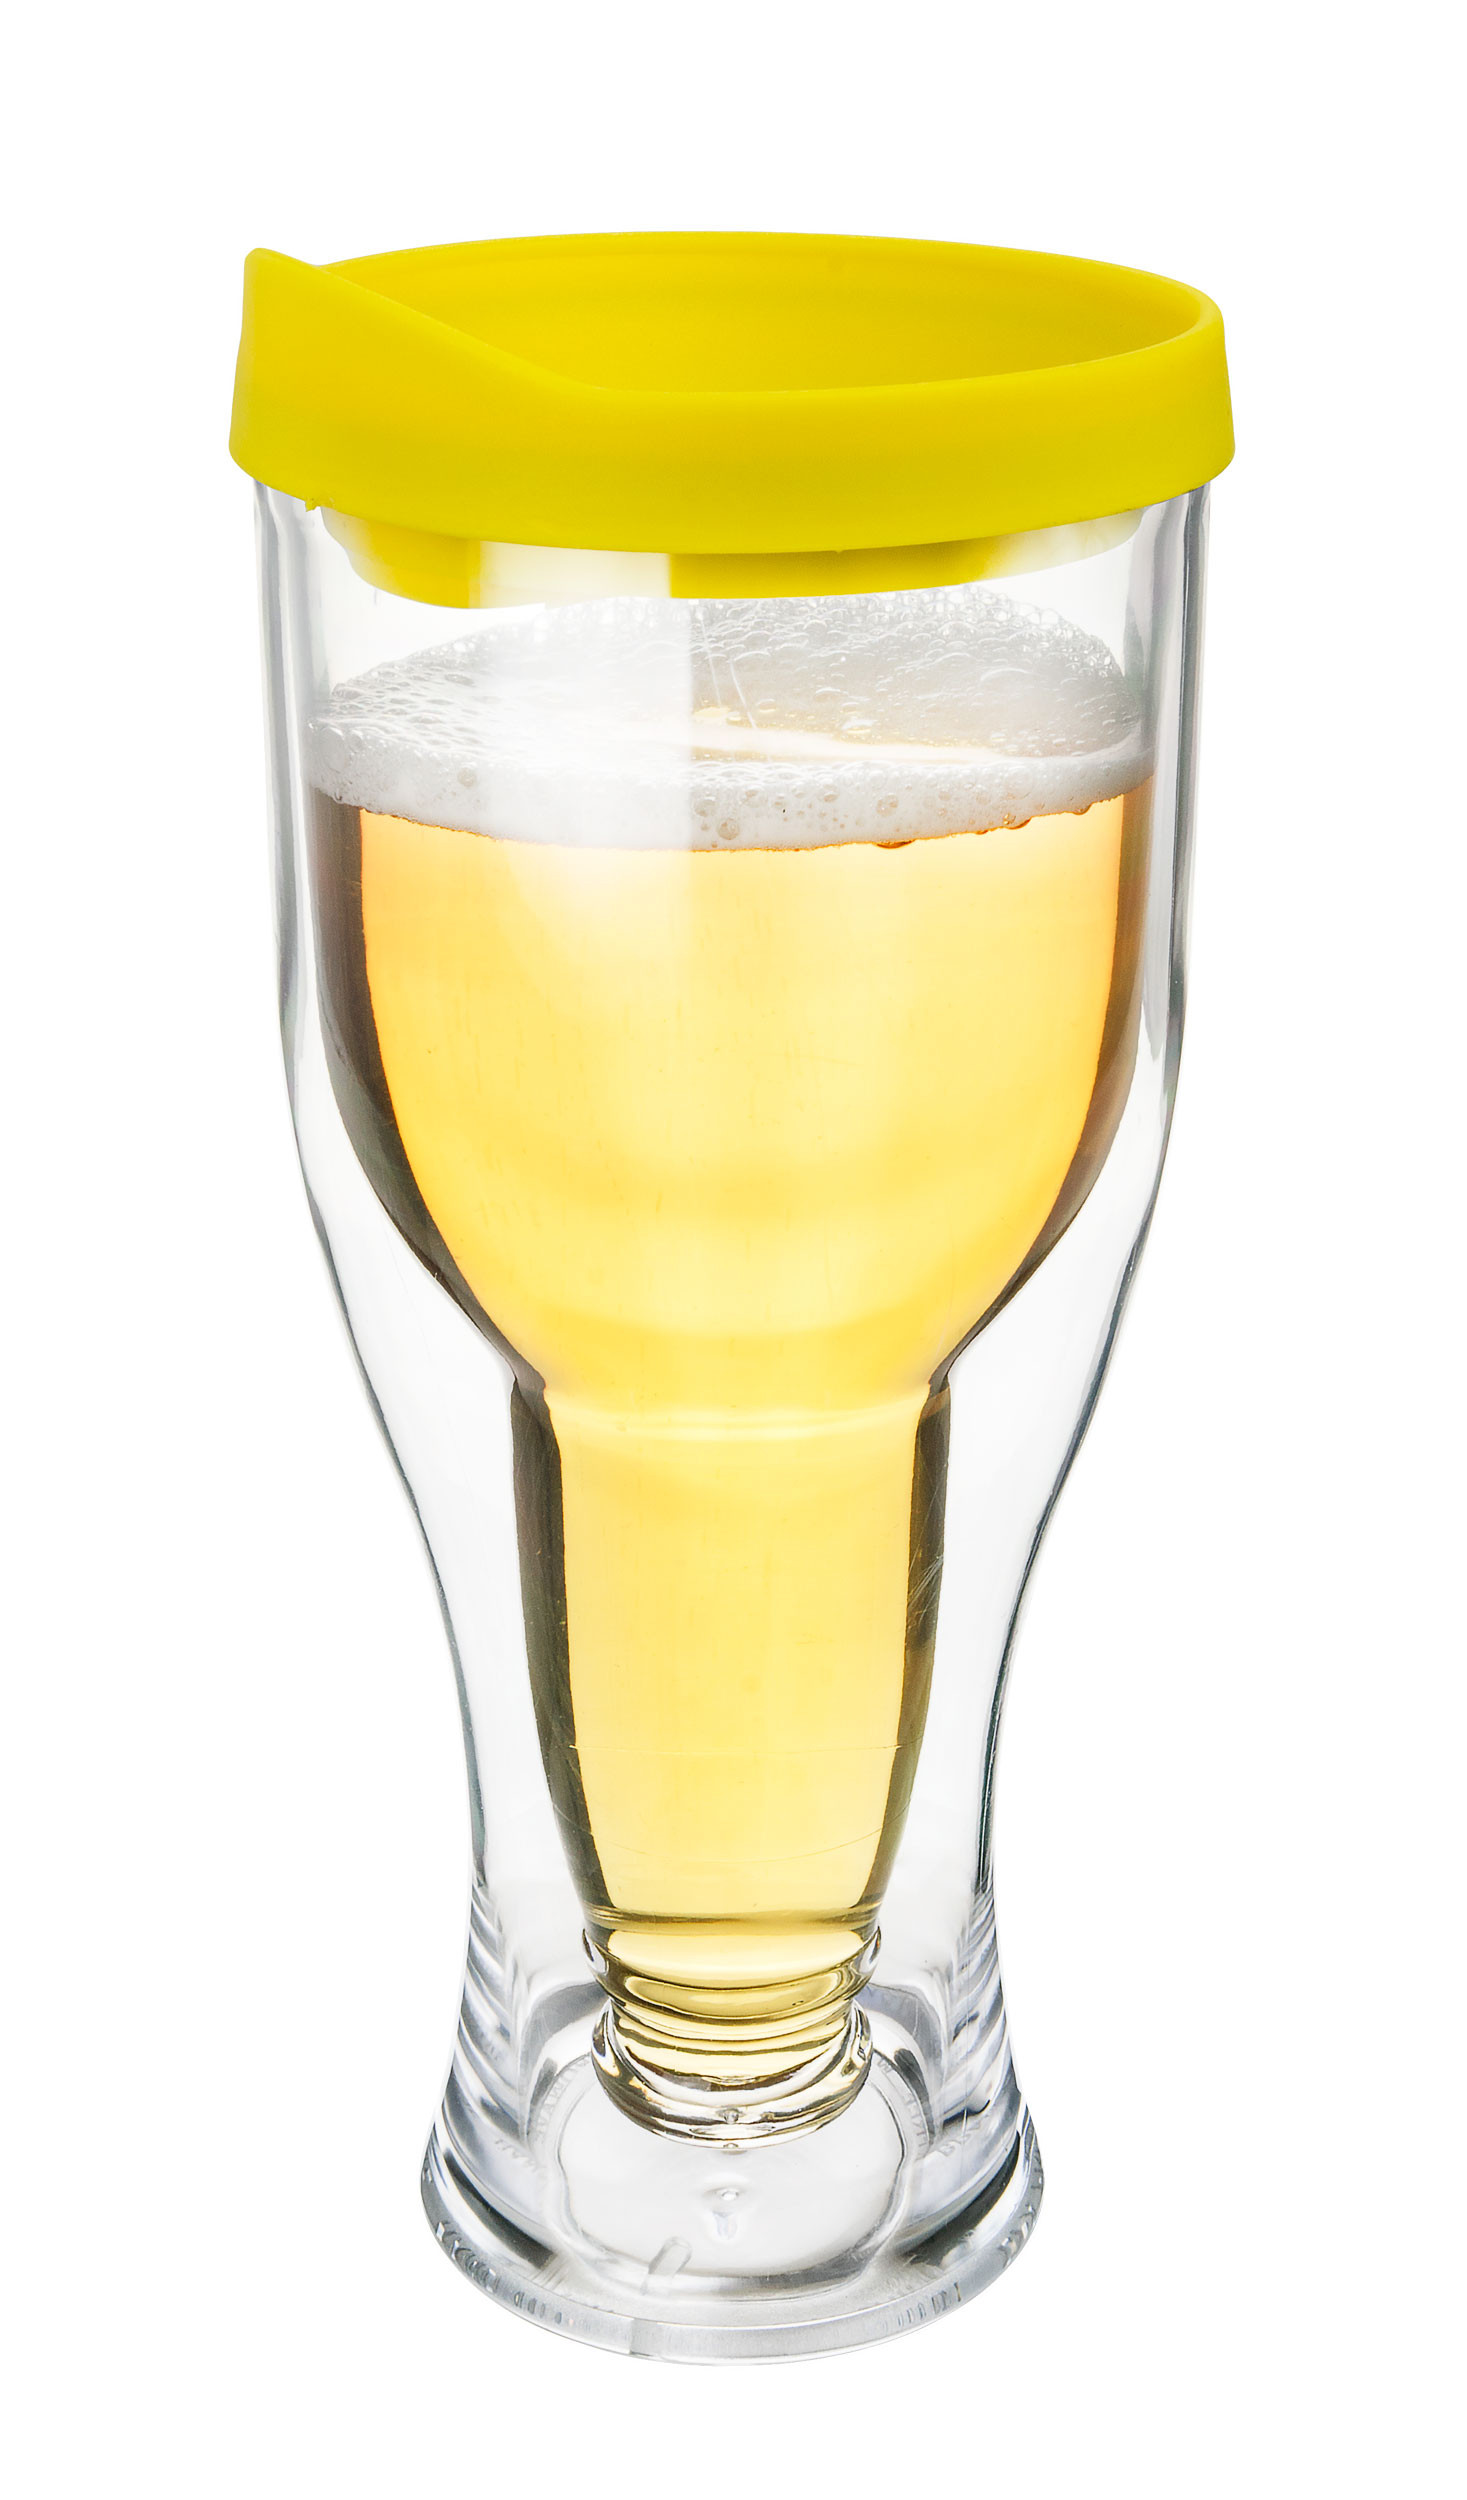 Beer Tumbler w/ Yellow / Gold Lid - Double Wall Acrylic - 14oz